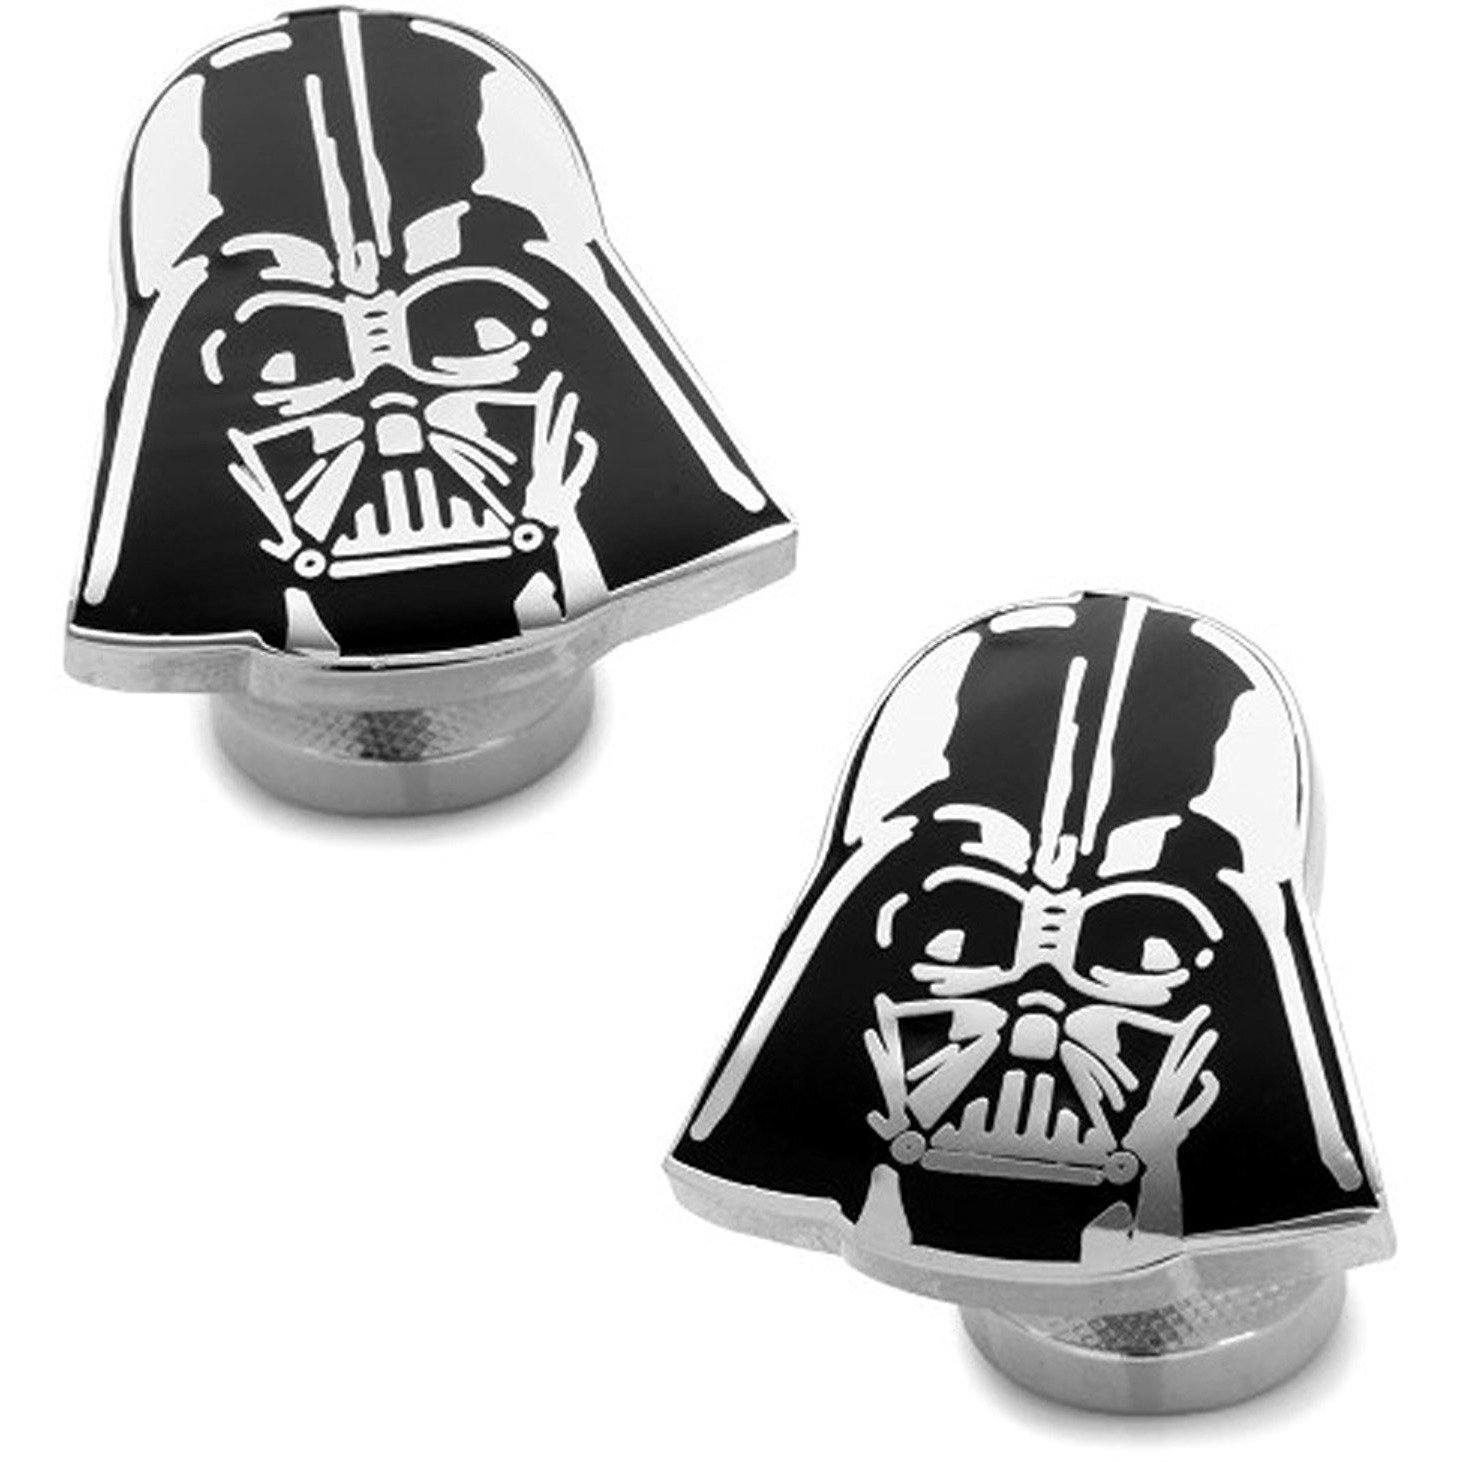 Star Wars Darth Vader Cufflinks, Novelty Cufflinks, Cuffed.com.au, CL5881, $69.00